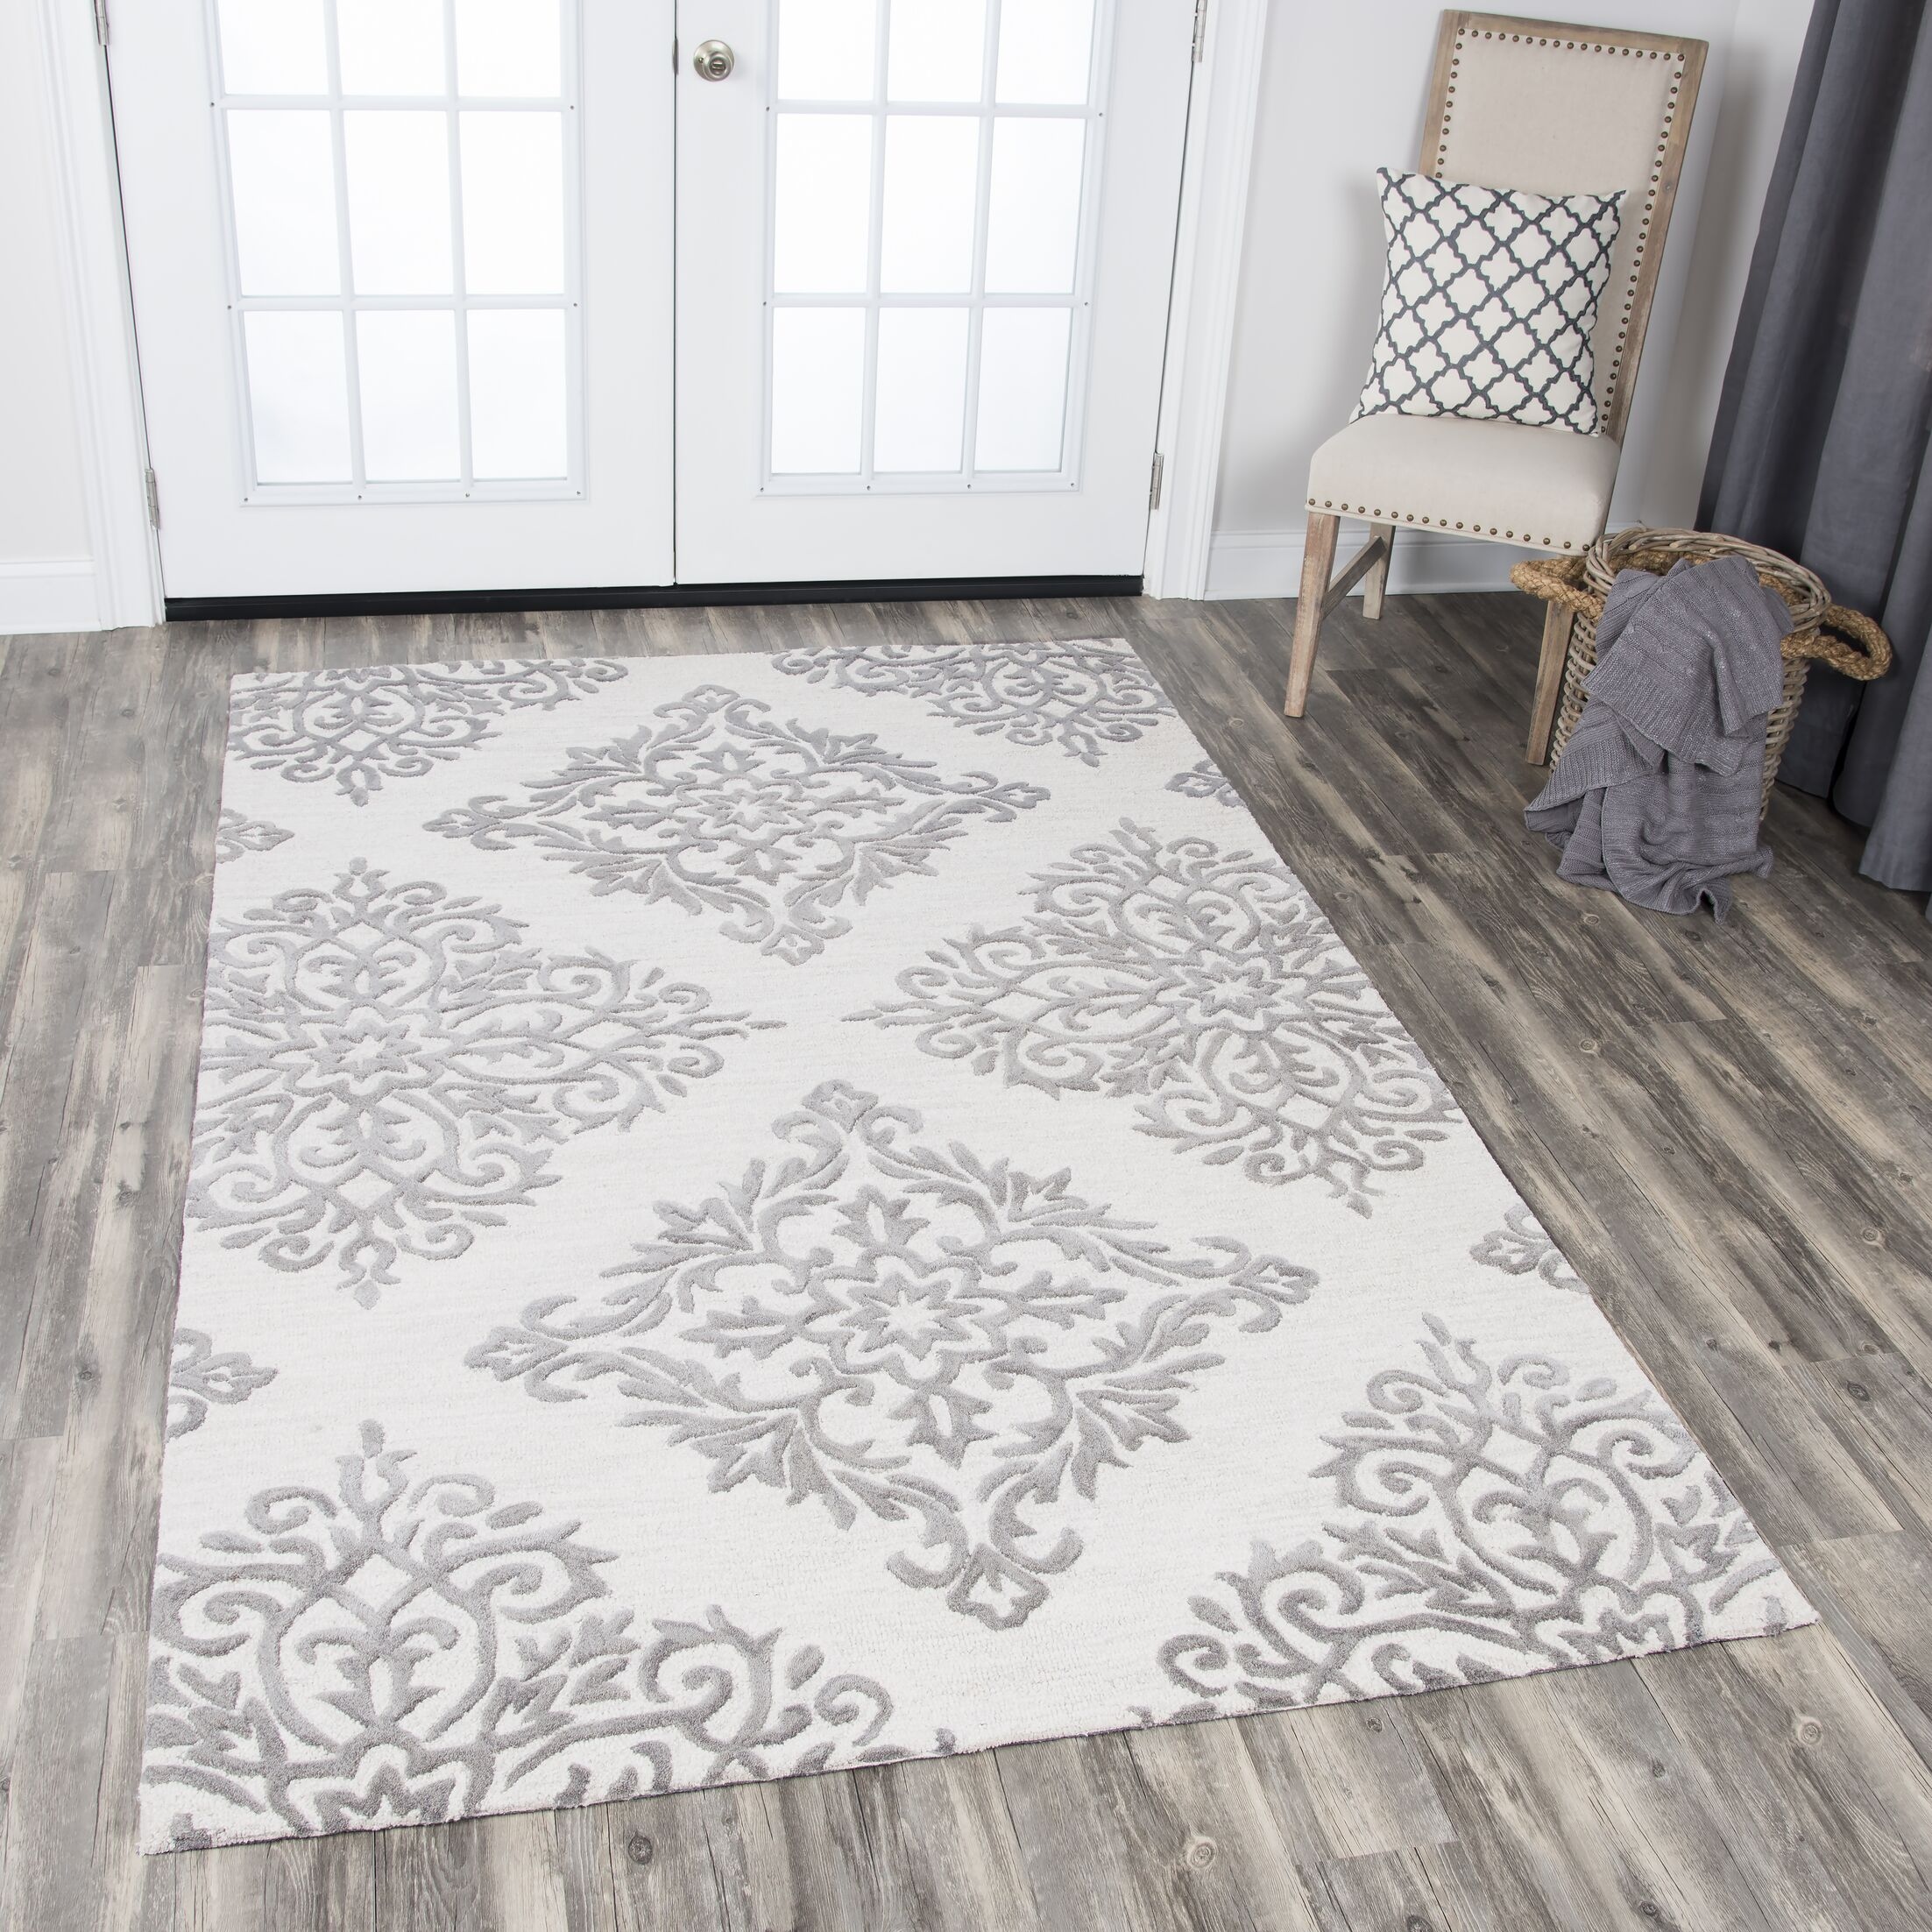 Pohl Hand-Tufted Natural Area Rug Rug Size: Rectangle 8' x 10'